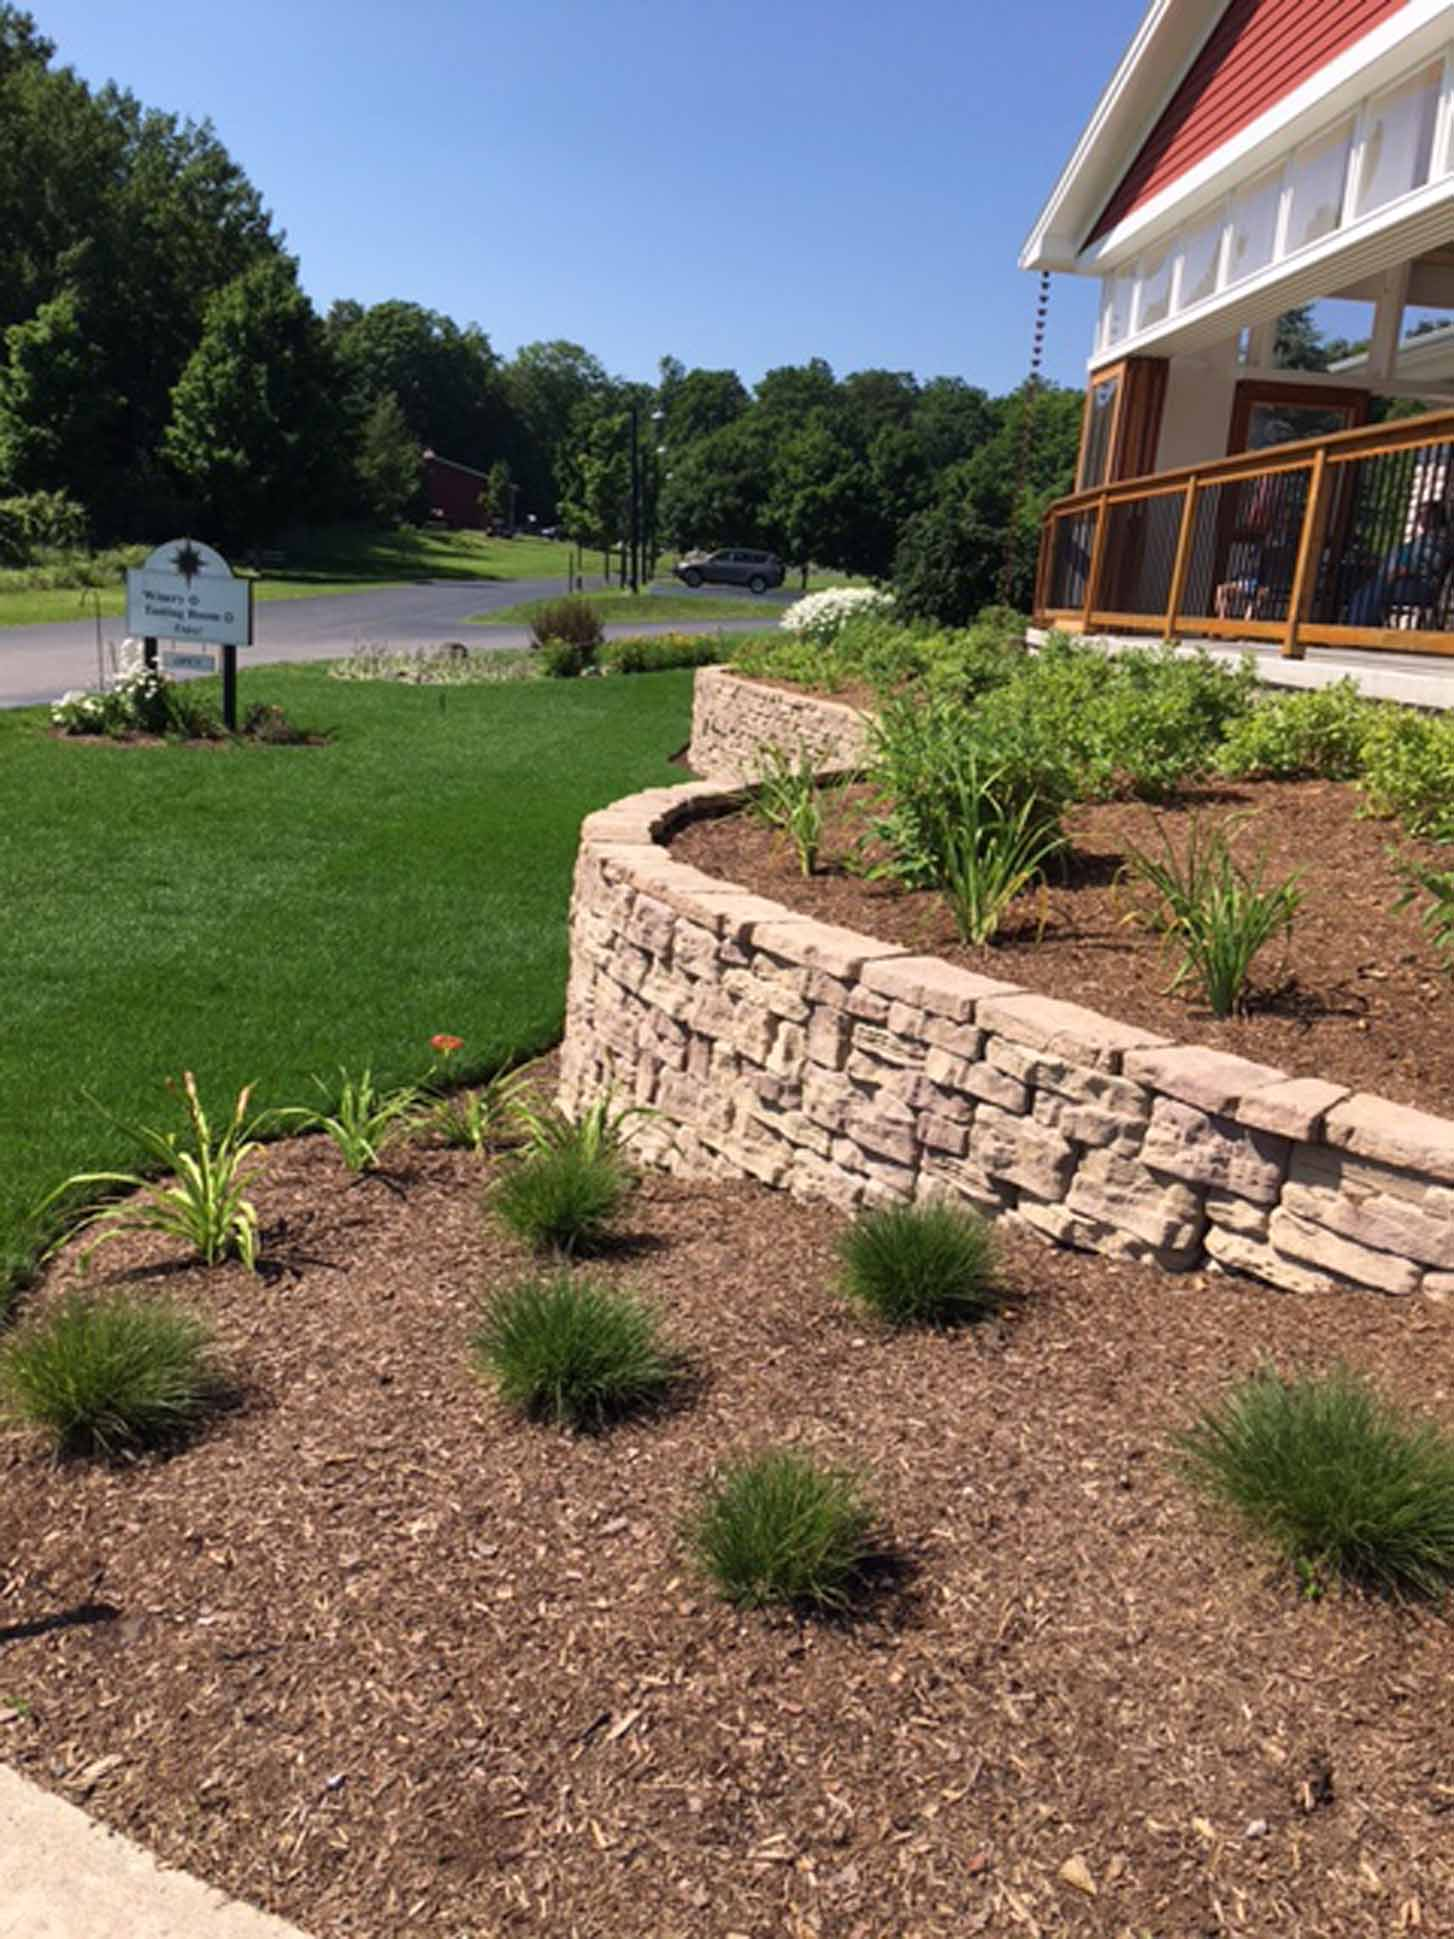 retaining-wall-landscape-beds-commercial-landscaping